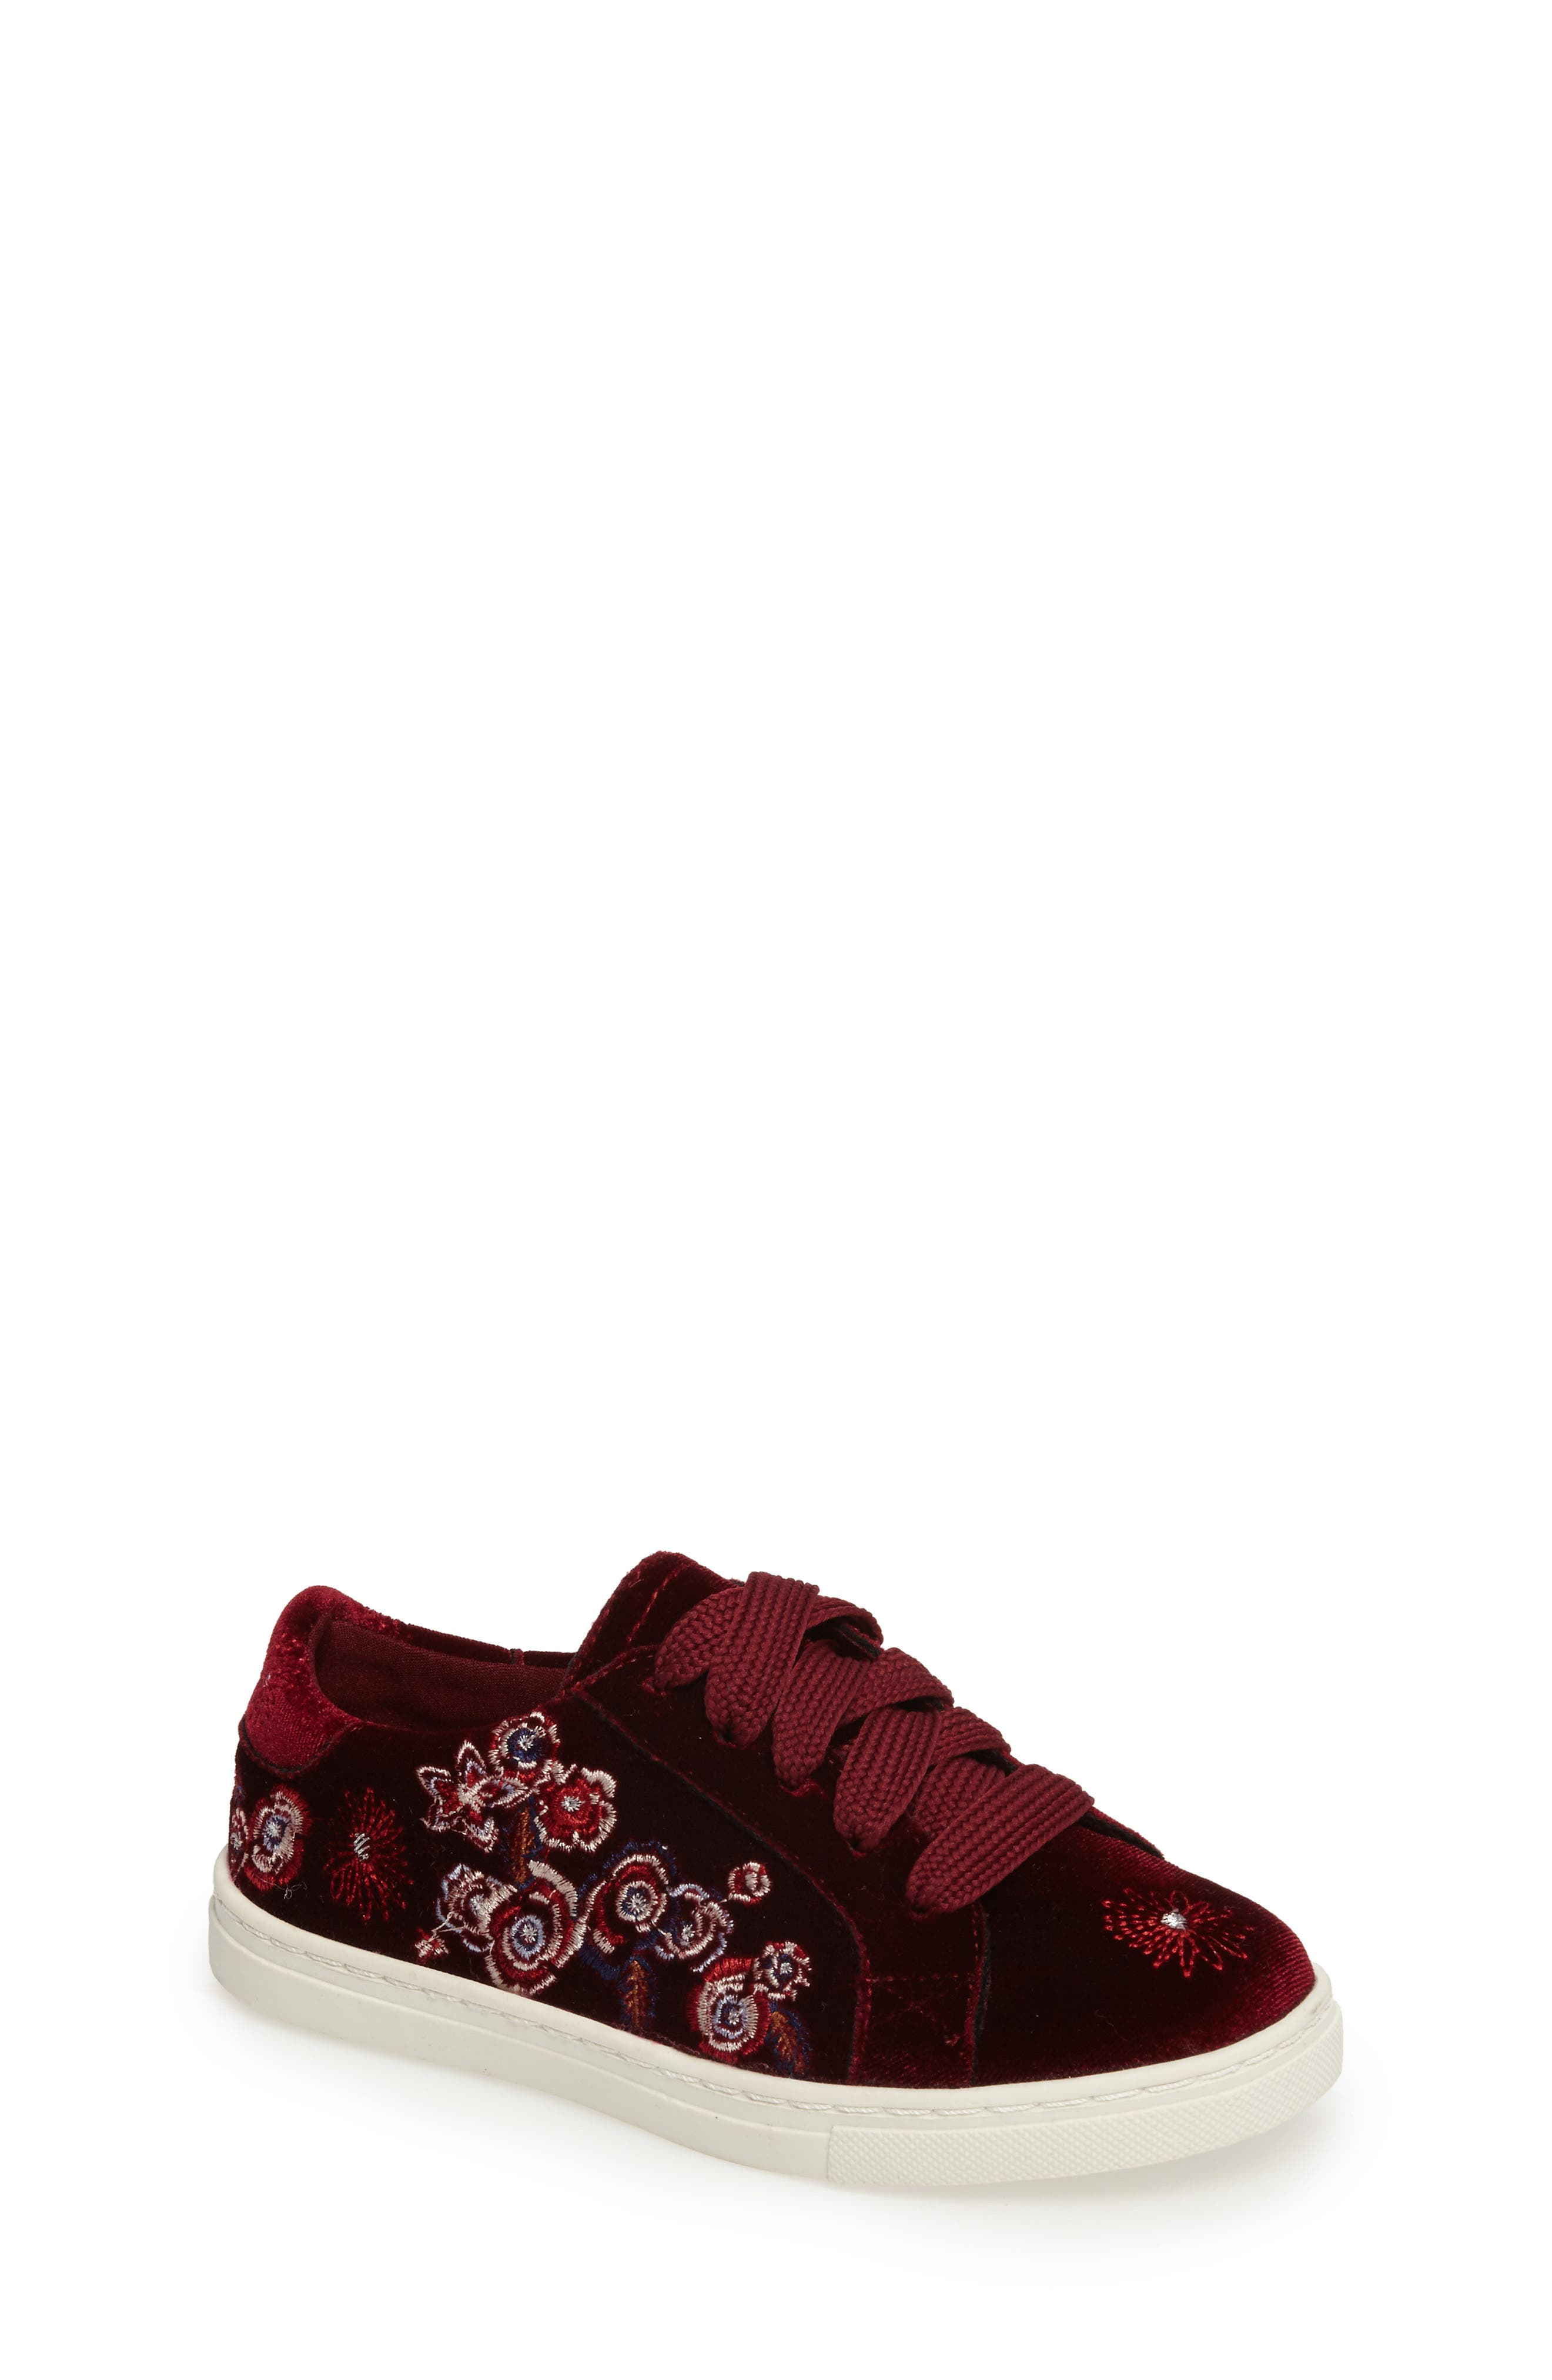 Zolly Floral Embroidered Sneaker,                             Main thumbnail 1, color,                             602